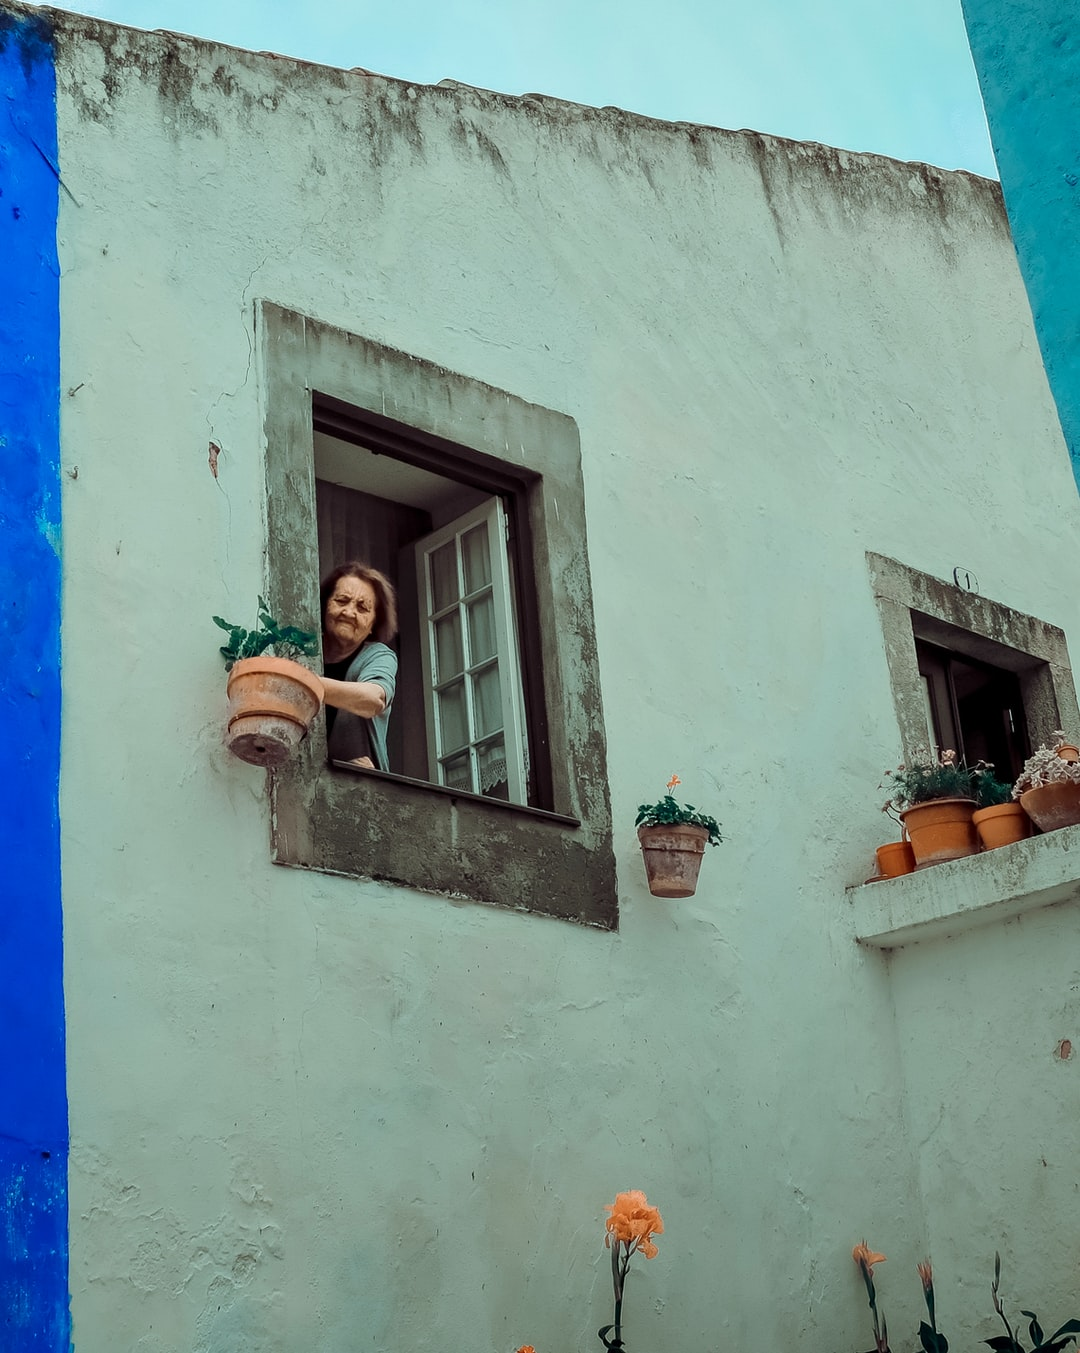 An elderly lady watering her plants in Obidos, Portugal.